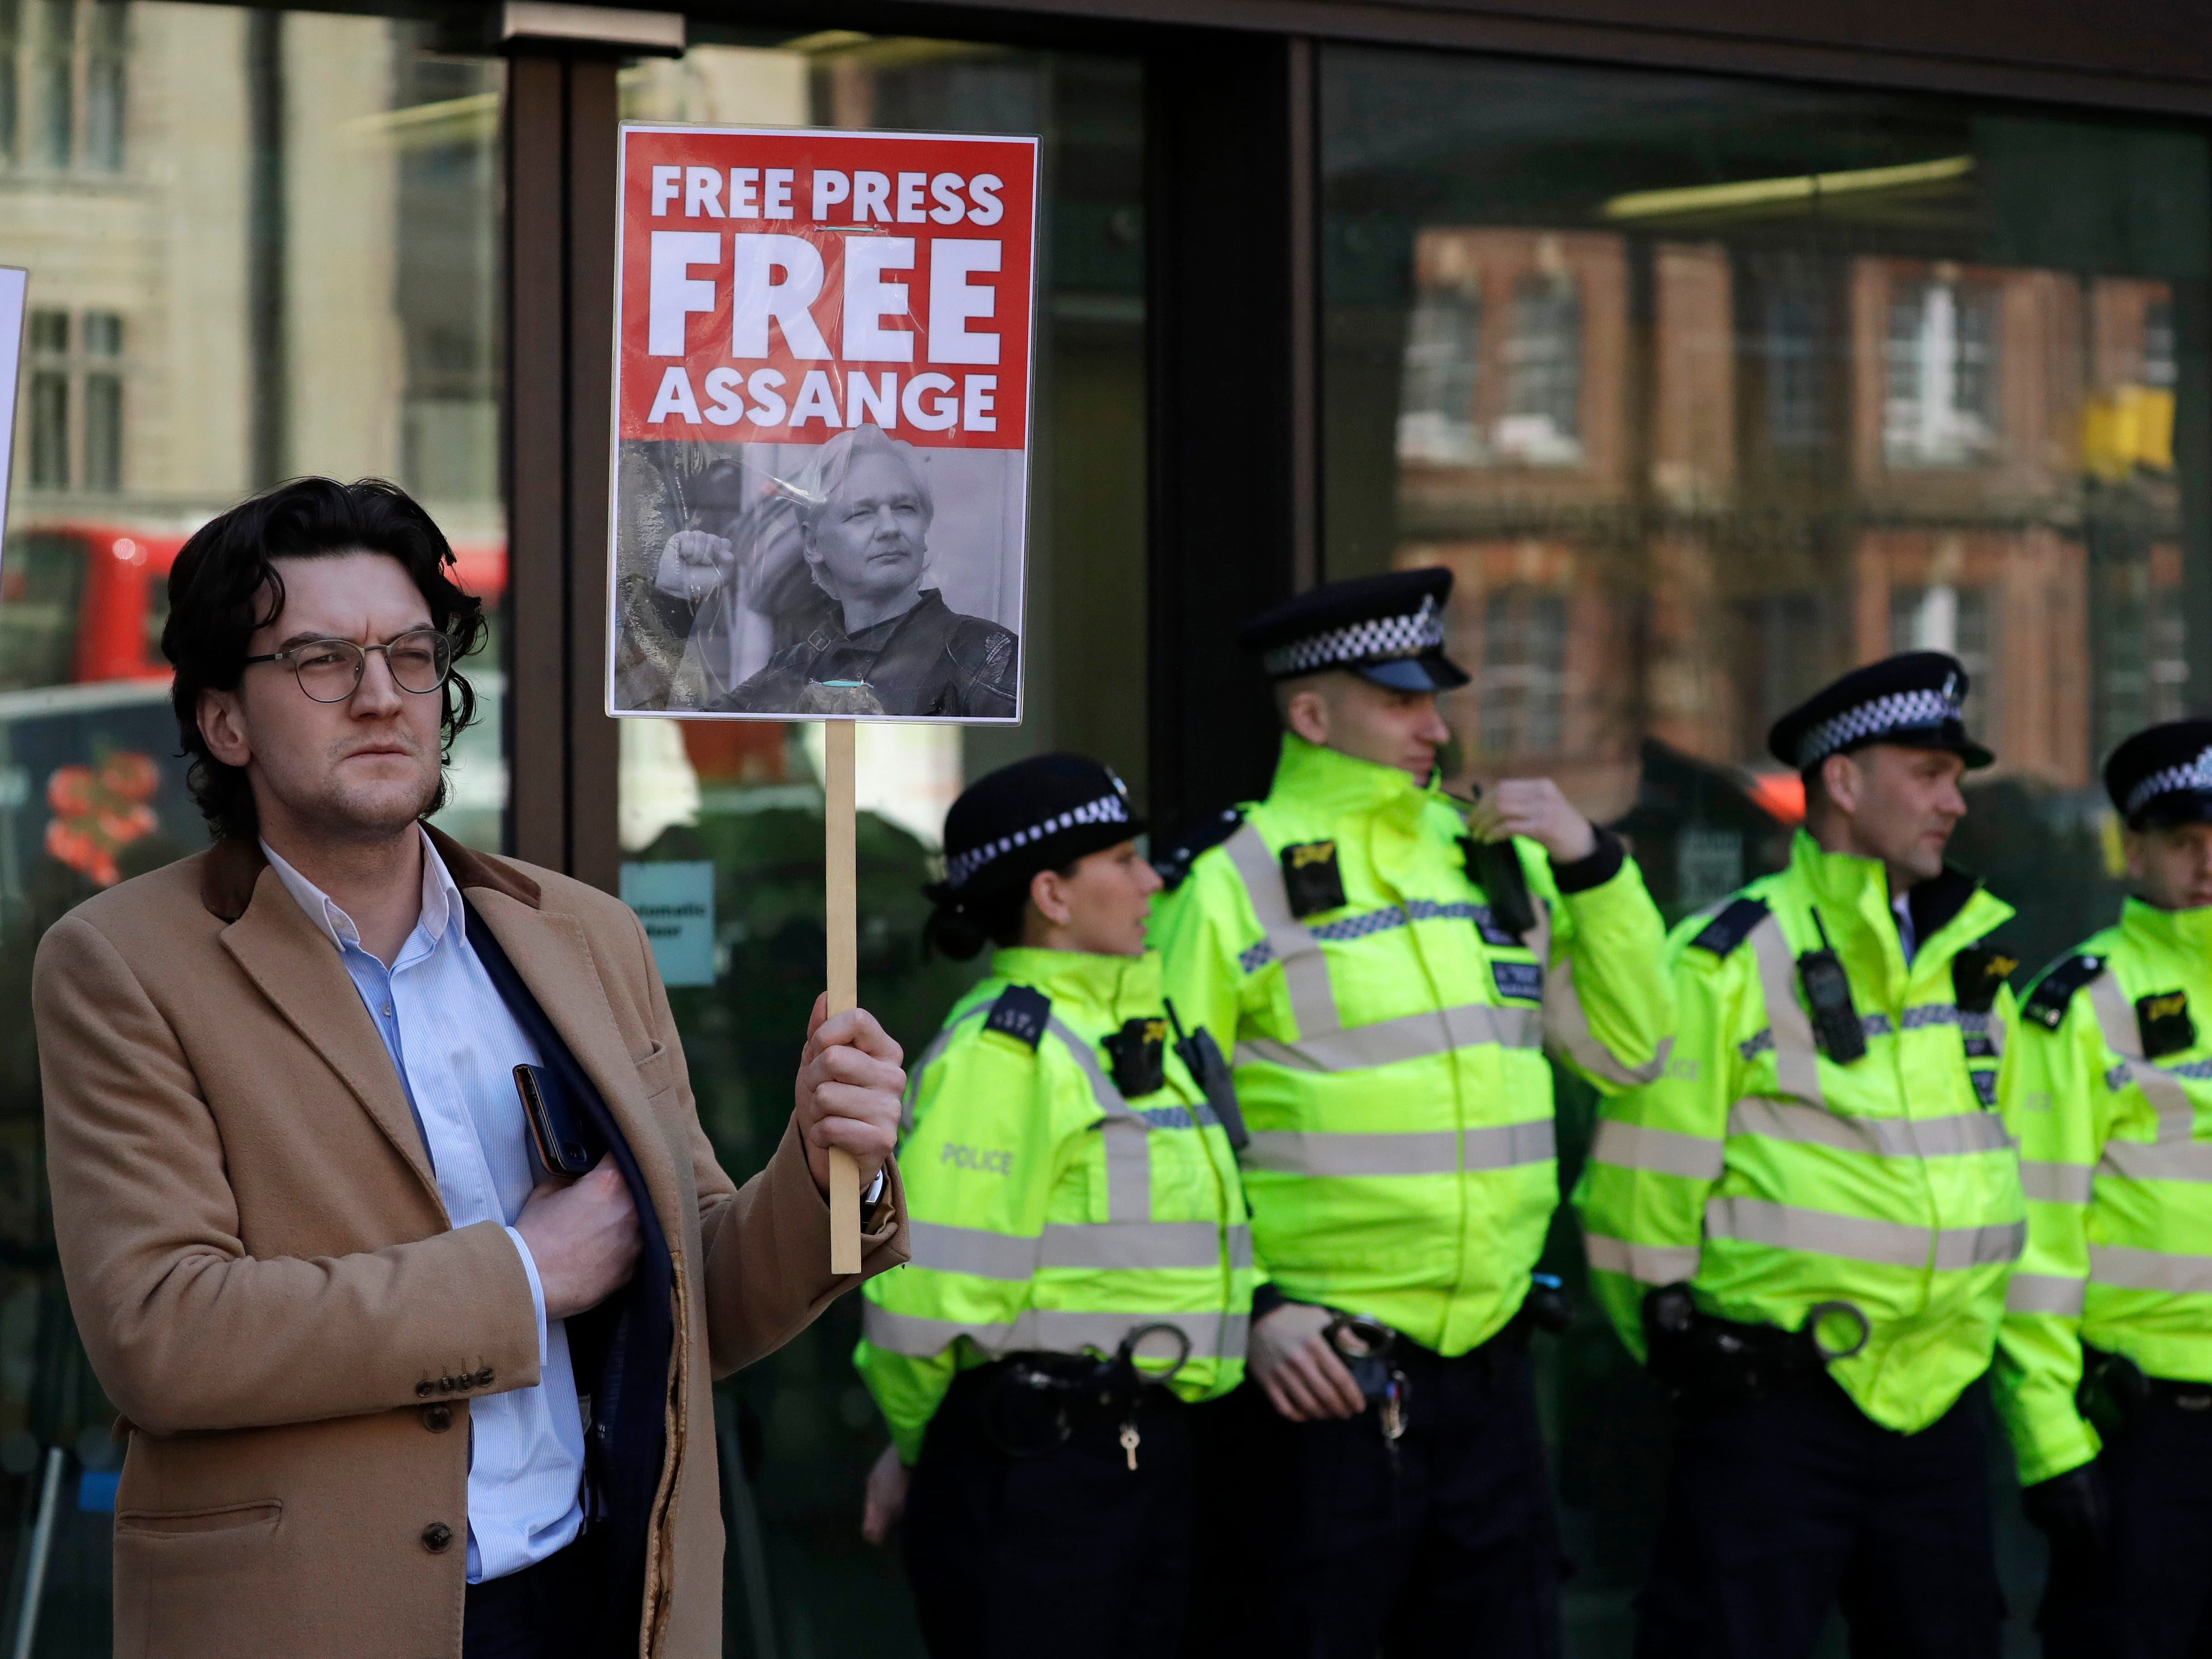 A protester demonstrating in support of WikiLeaks founder Julian Assange holds a placard outside Westminster magistrates court where he was appearing in London, Thursday, April 11, 2019. Police in London arrested WikiLeaks founder Assange at the Ecuadorean embassy Thursday, April 11, 2019 for failing to surrender to the court in 2012, shortly after the South American nation revoked his asylum.